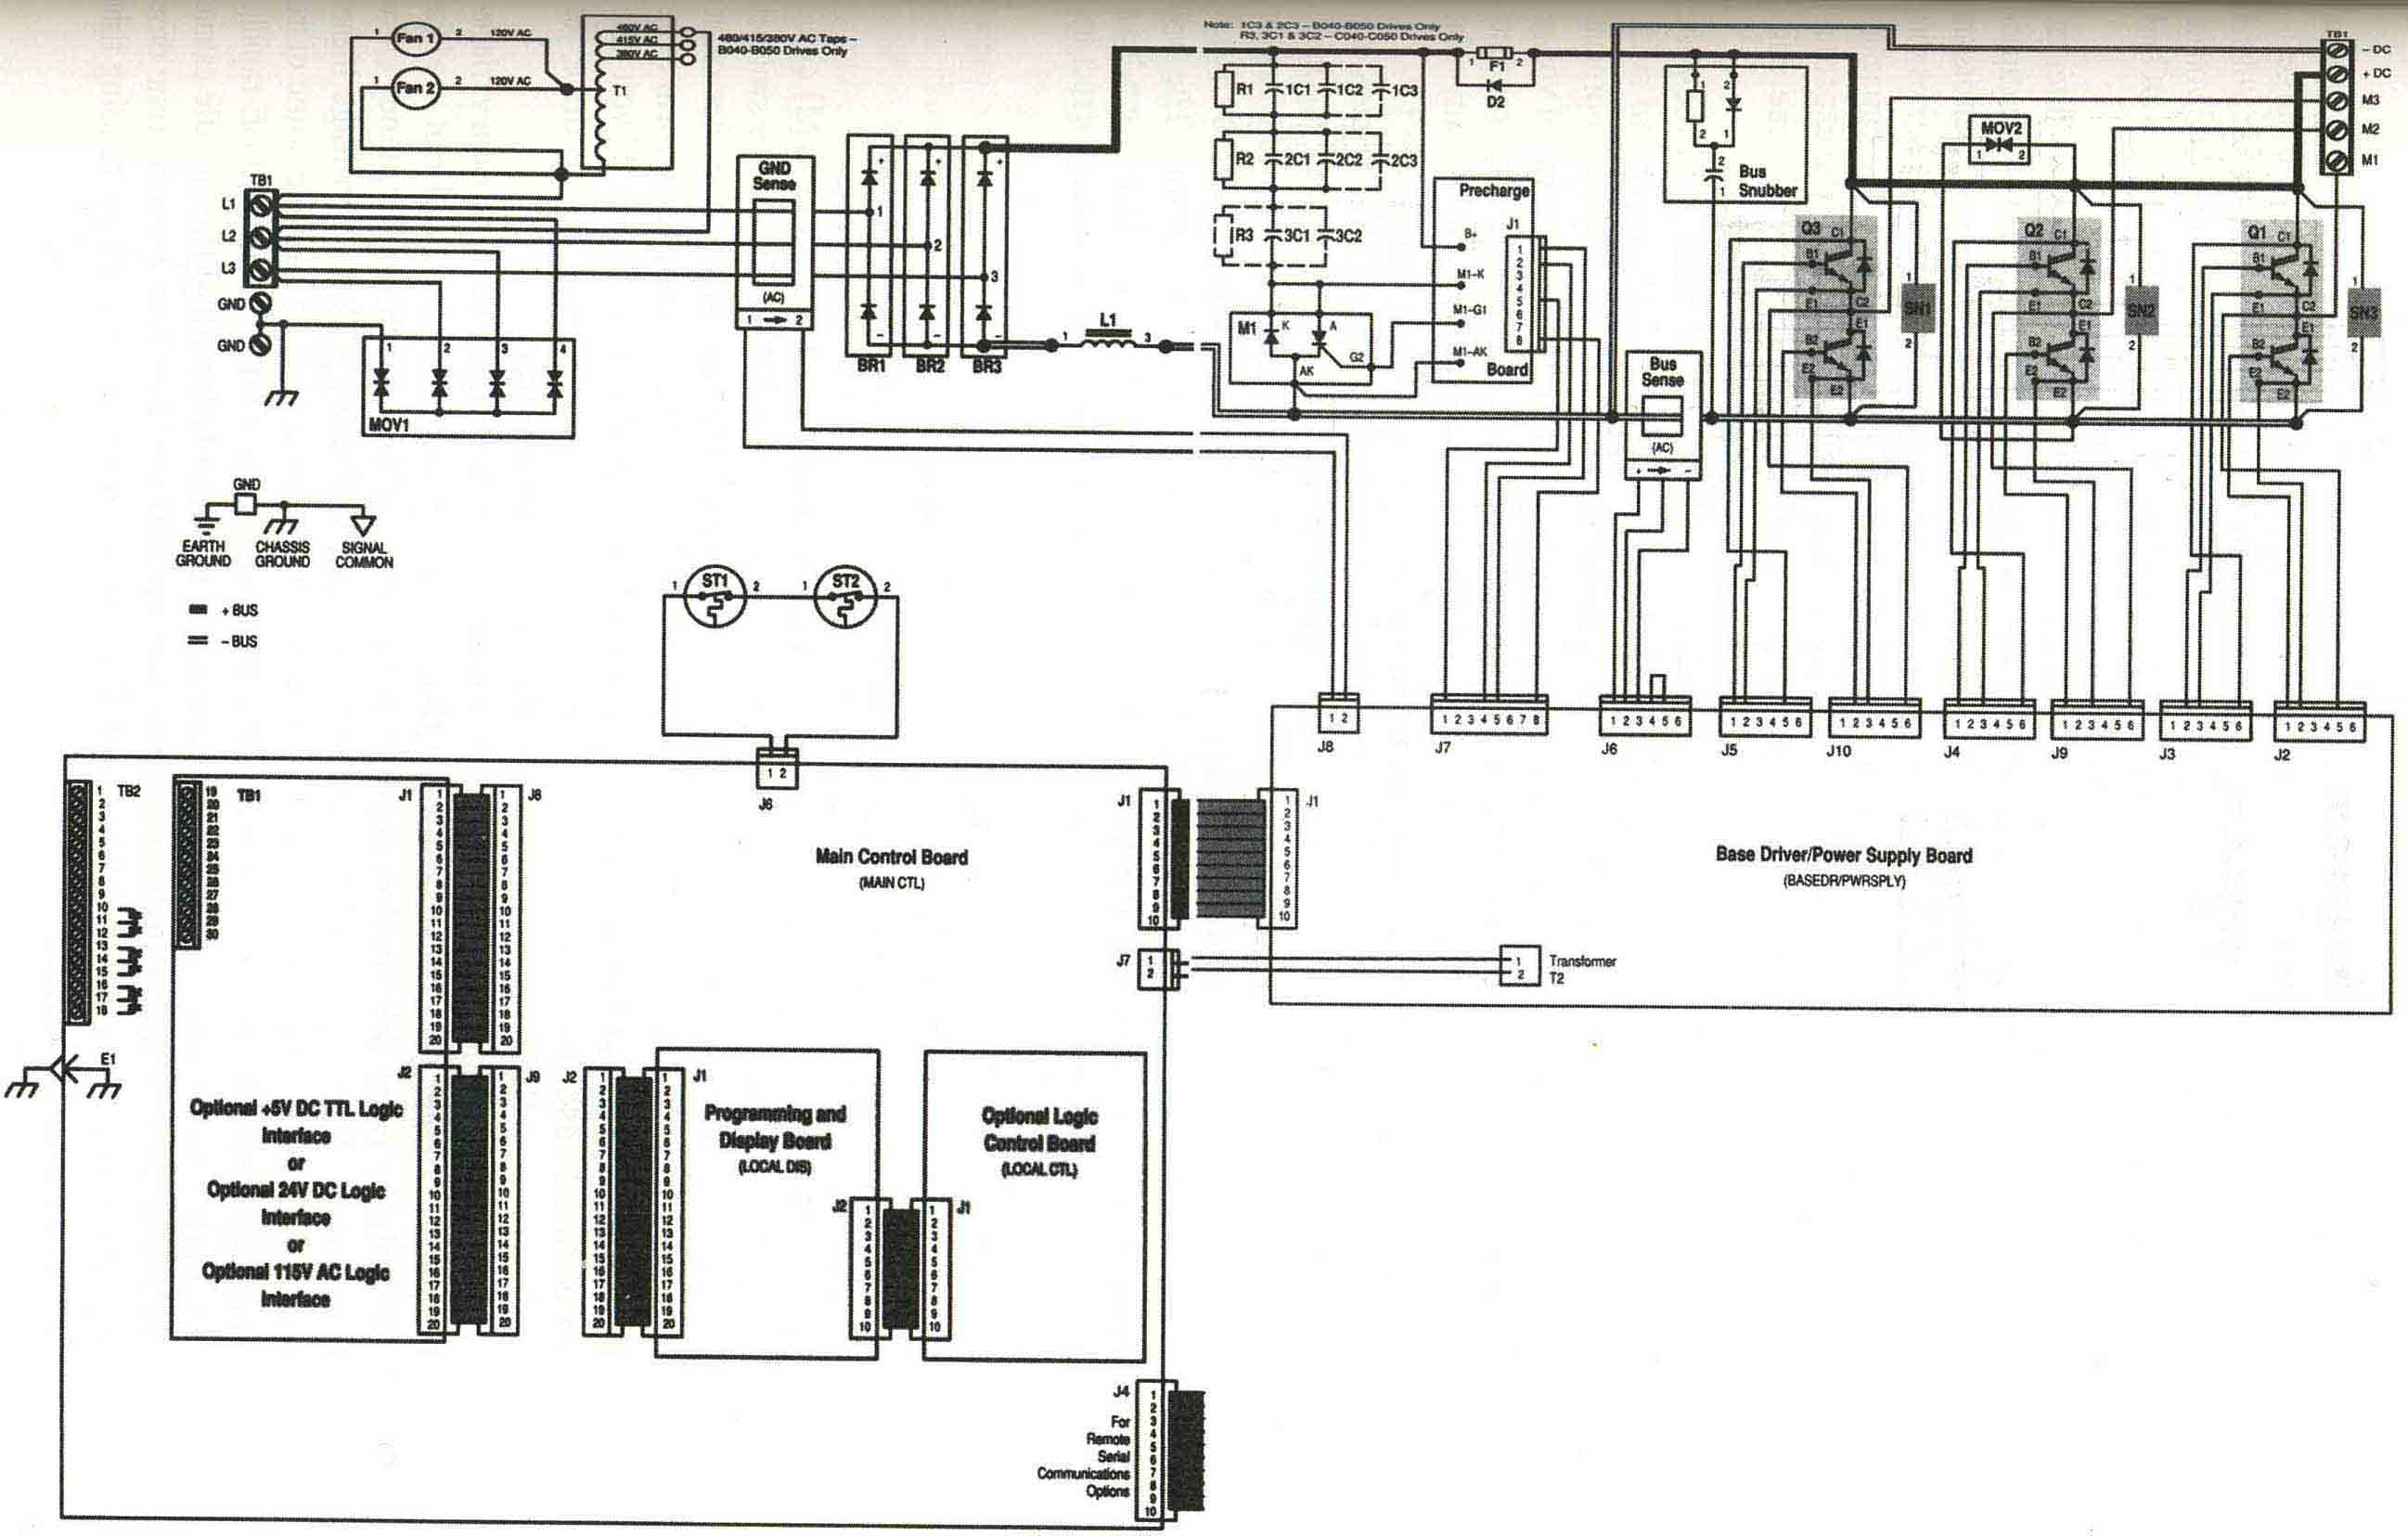 hight resolution of m45 fog light bulb wiring diagram wiring library fog light switch and relay m45 fog light bulb wiring diagram